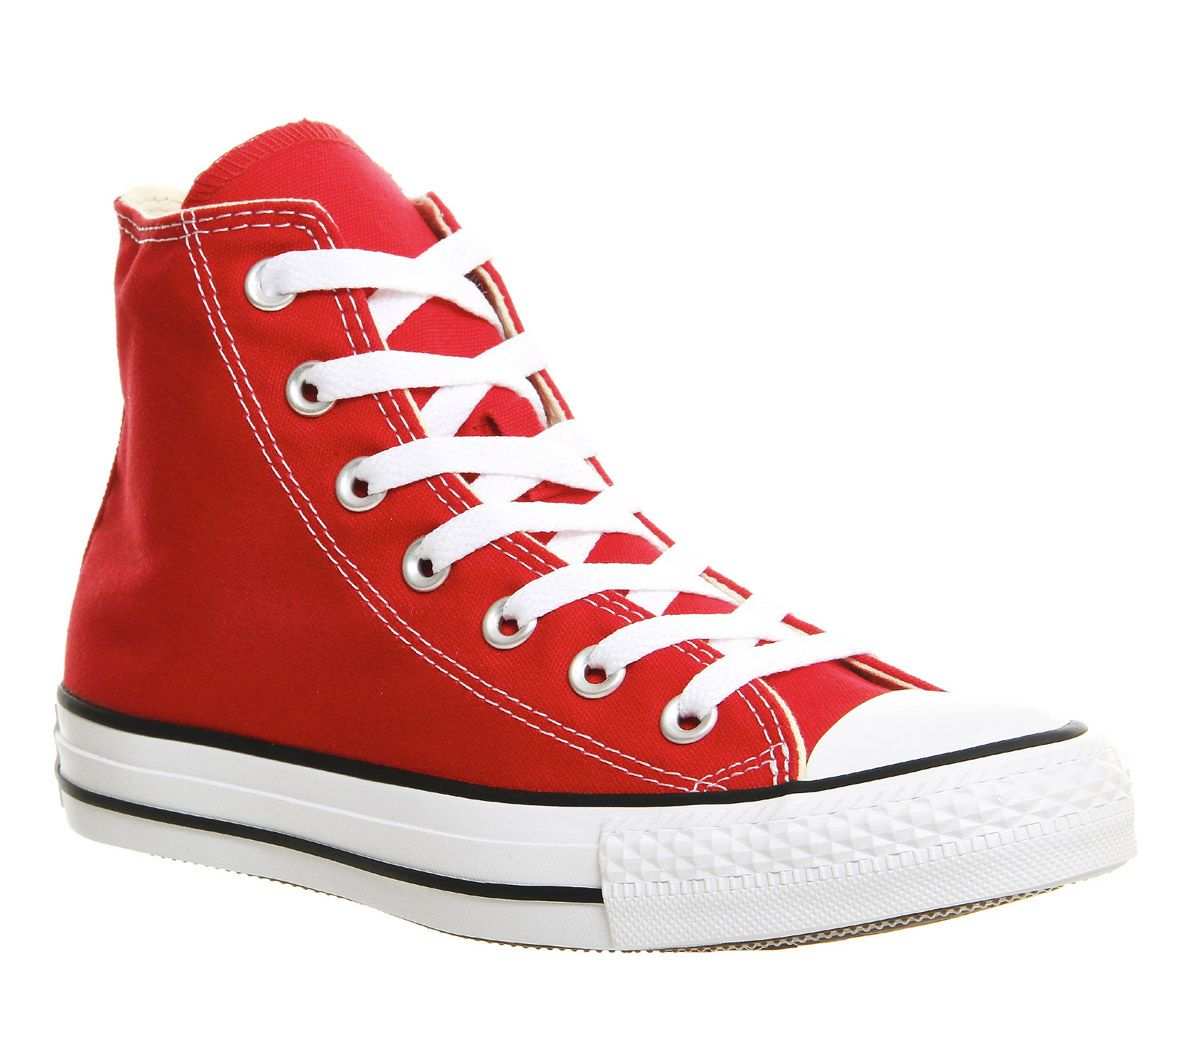 Sentinel Womens Converse Red Textile Lace Up Trainers UK Size 6 * Ex Display